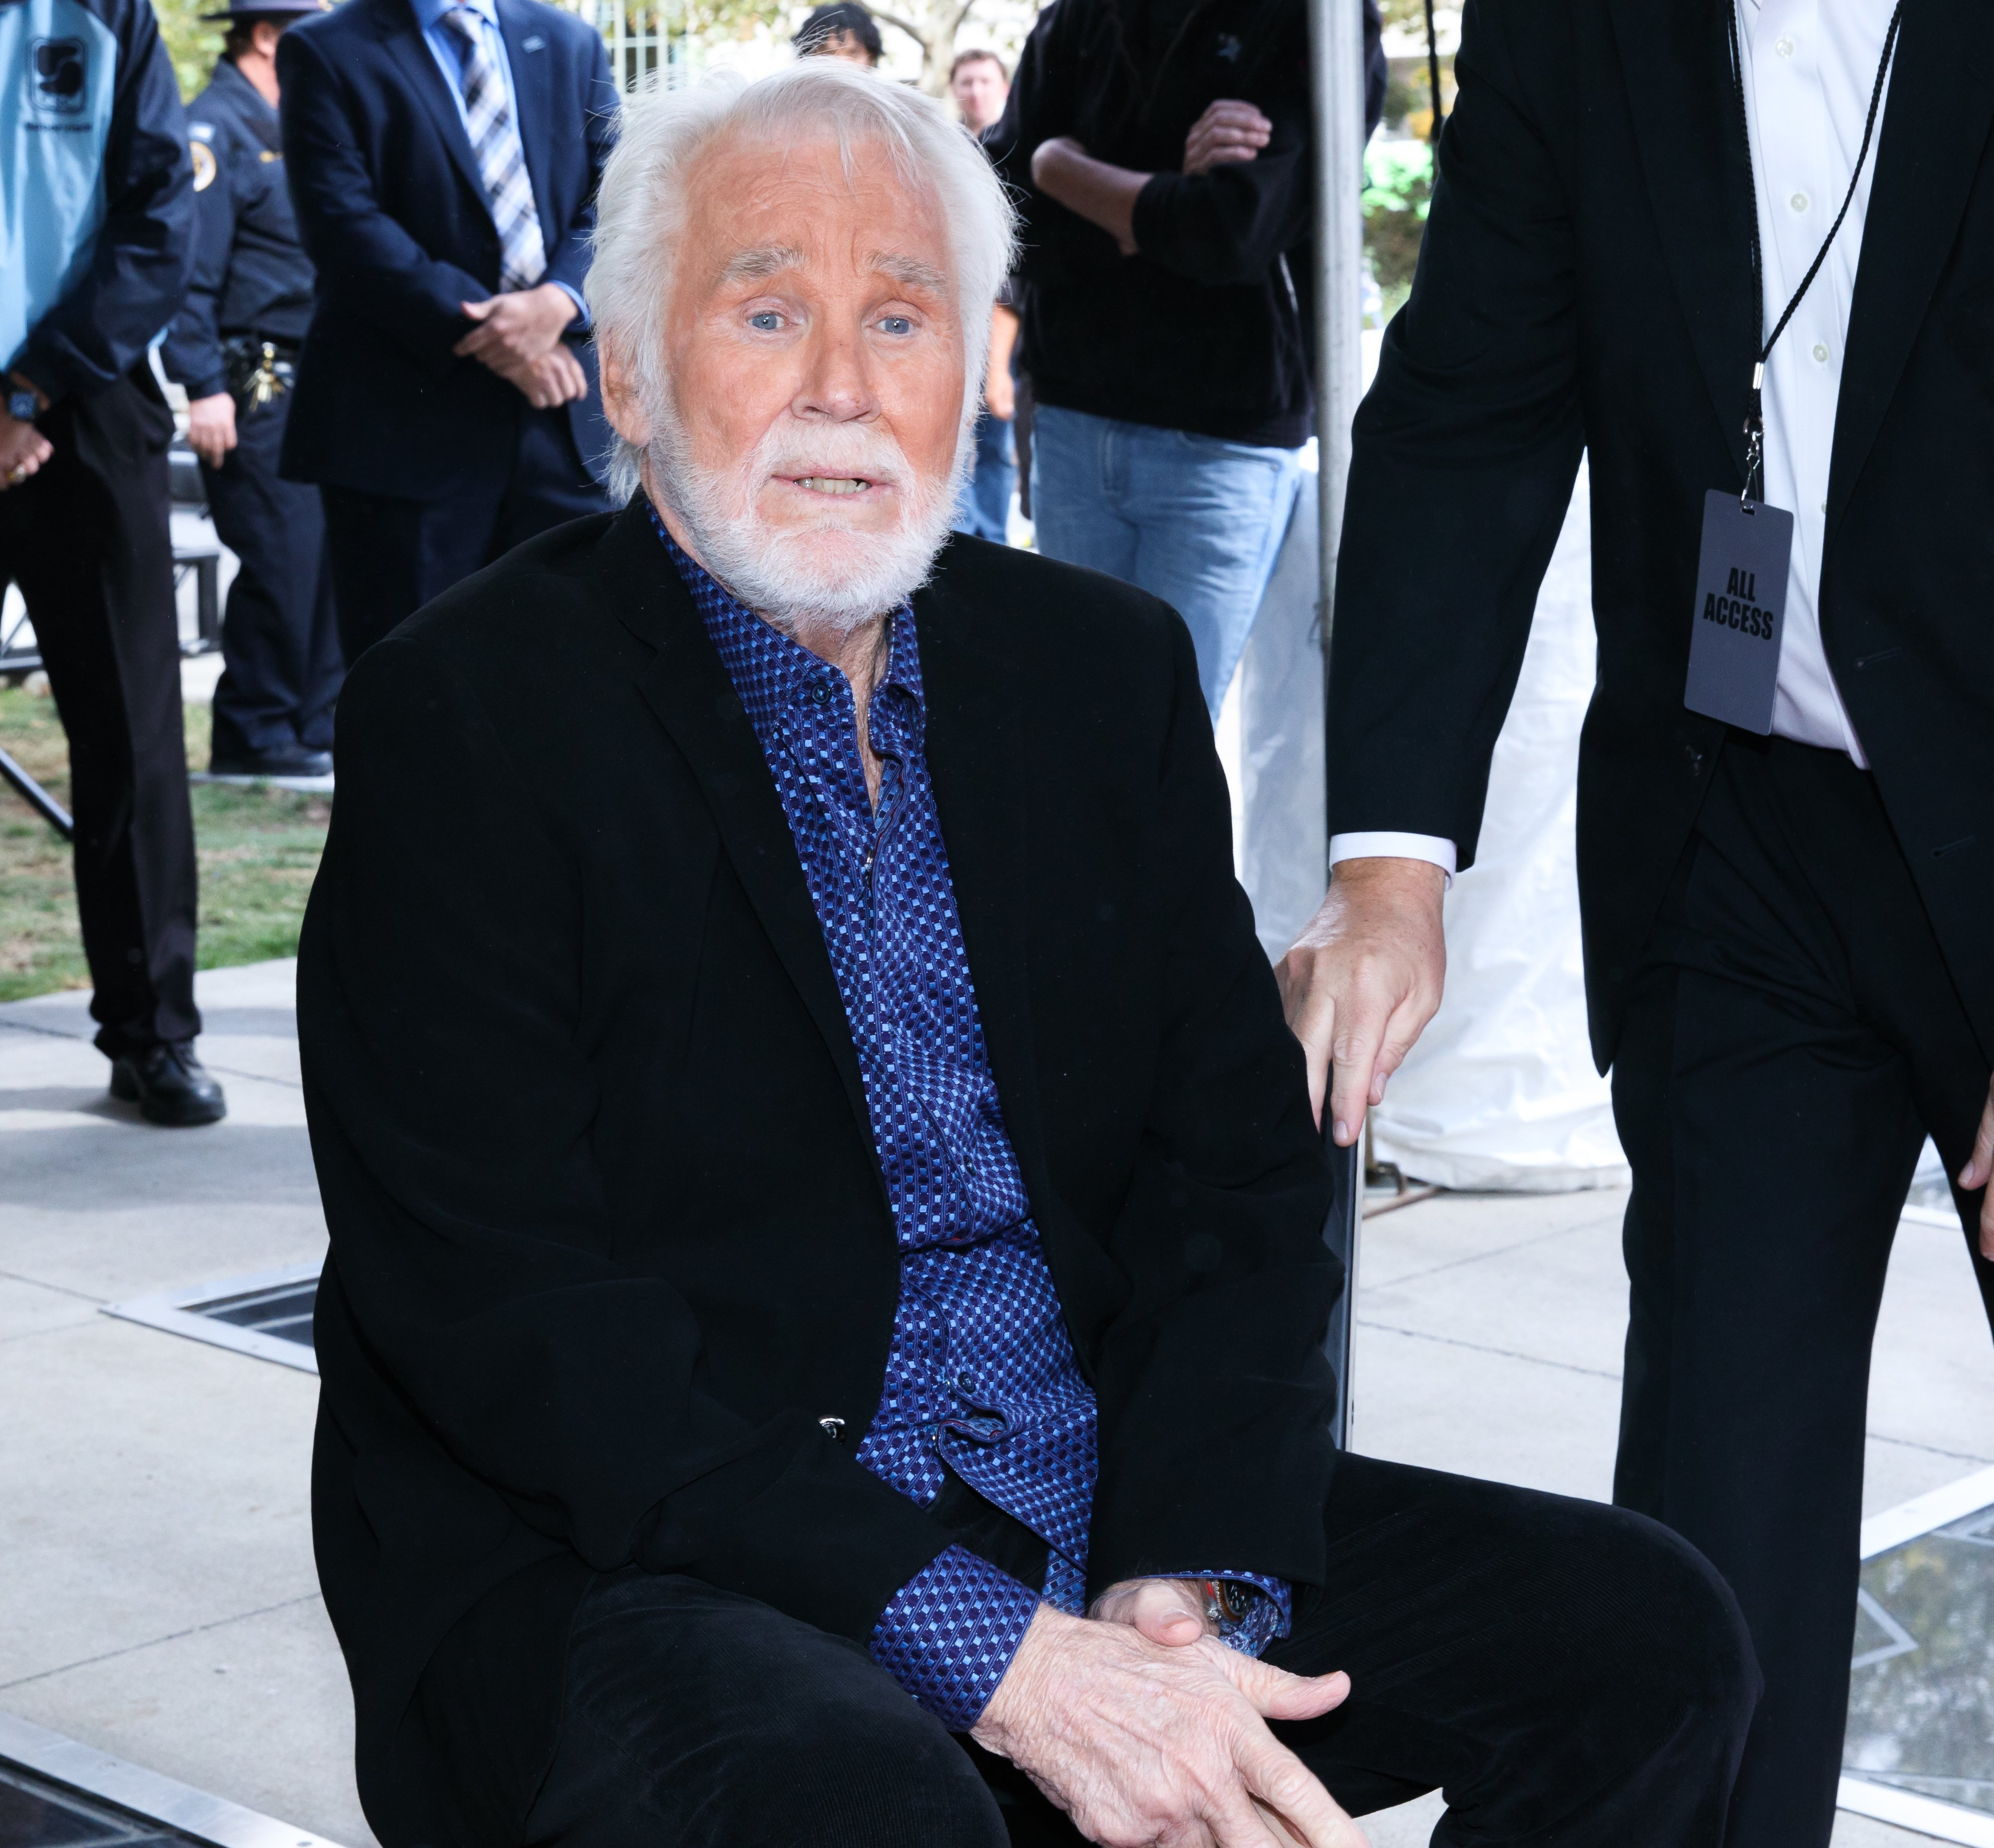 Kenny Rogers is inducted into the Nashville Music City Walk of Fame on October 24, 2017, in Nashville, Tennessee. | Source: Getty Images.